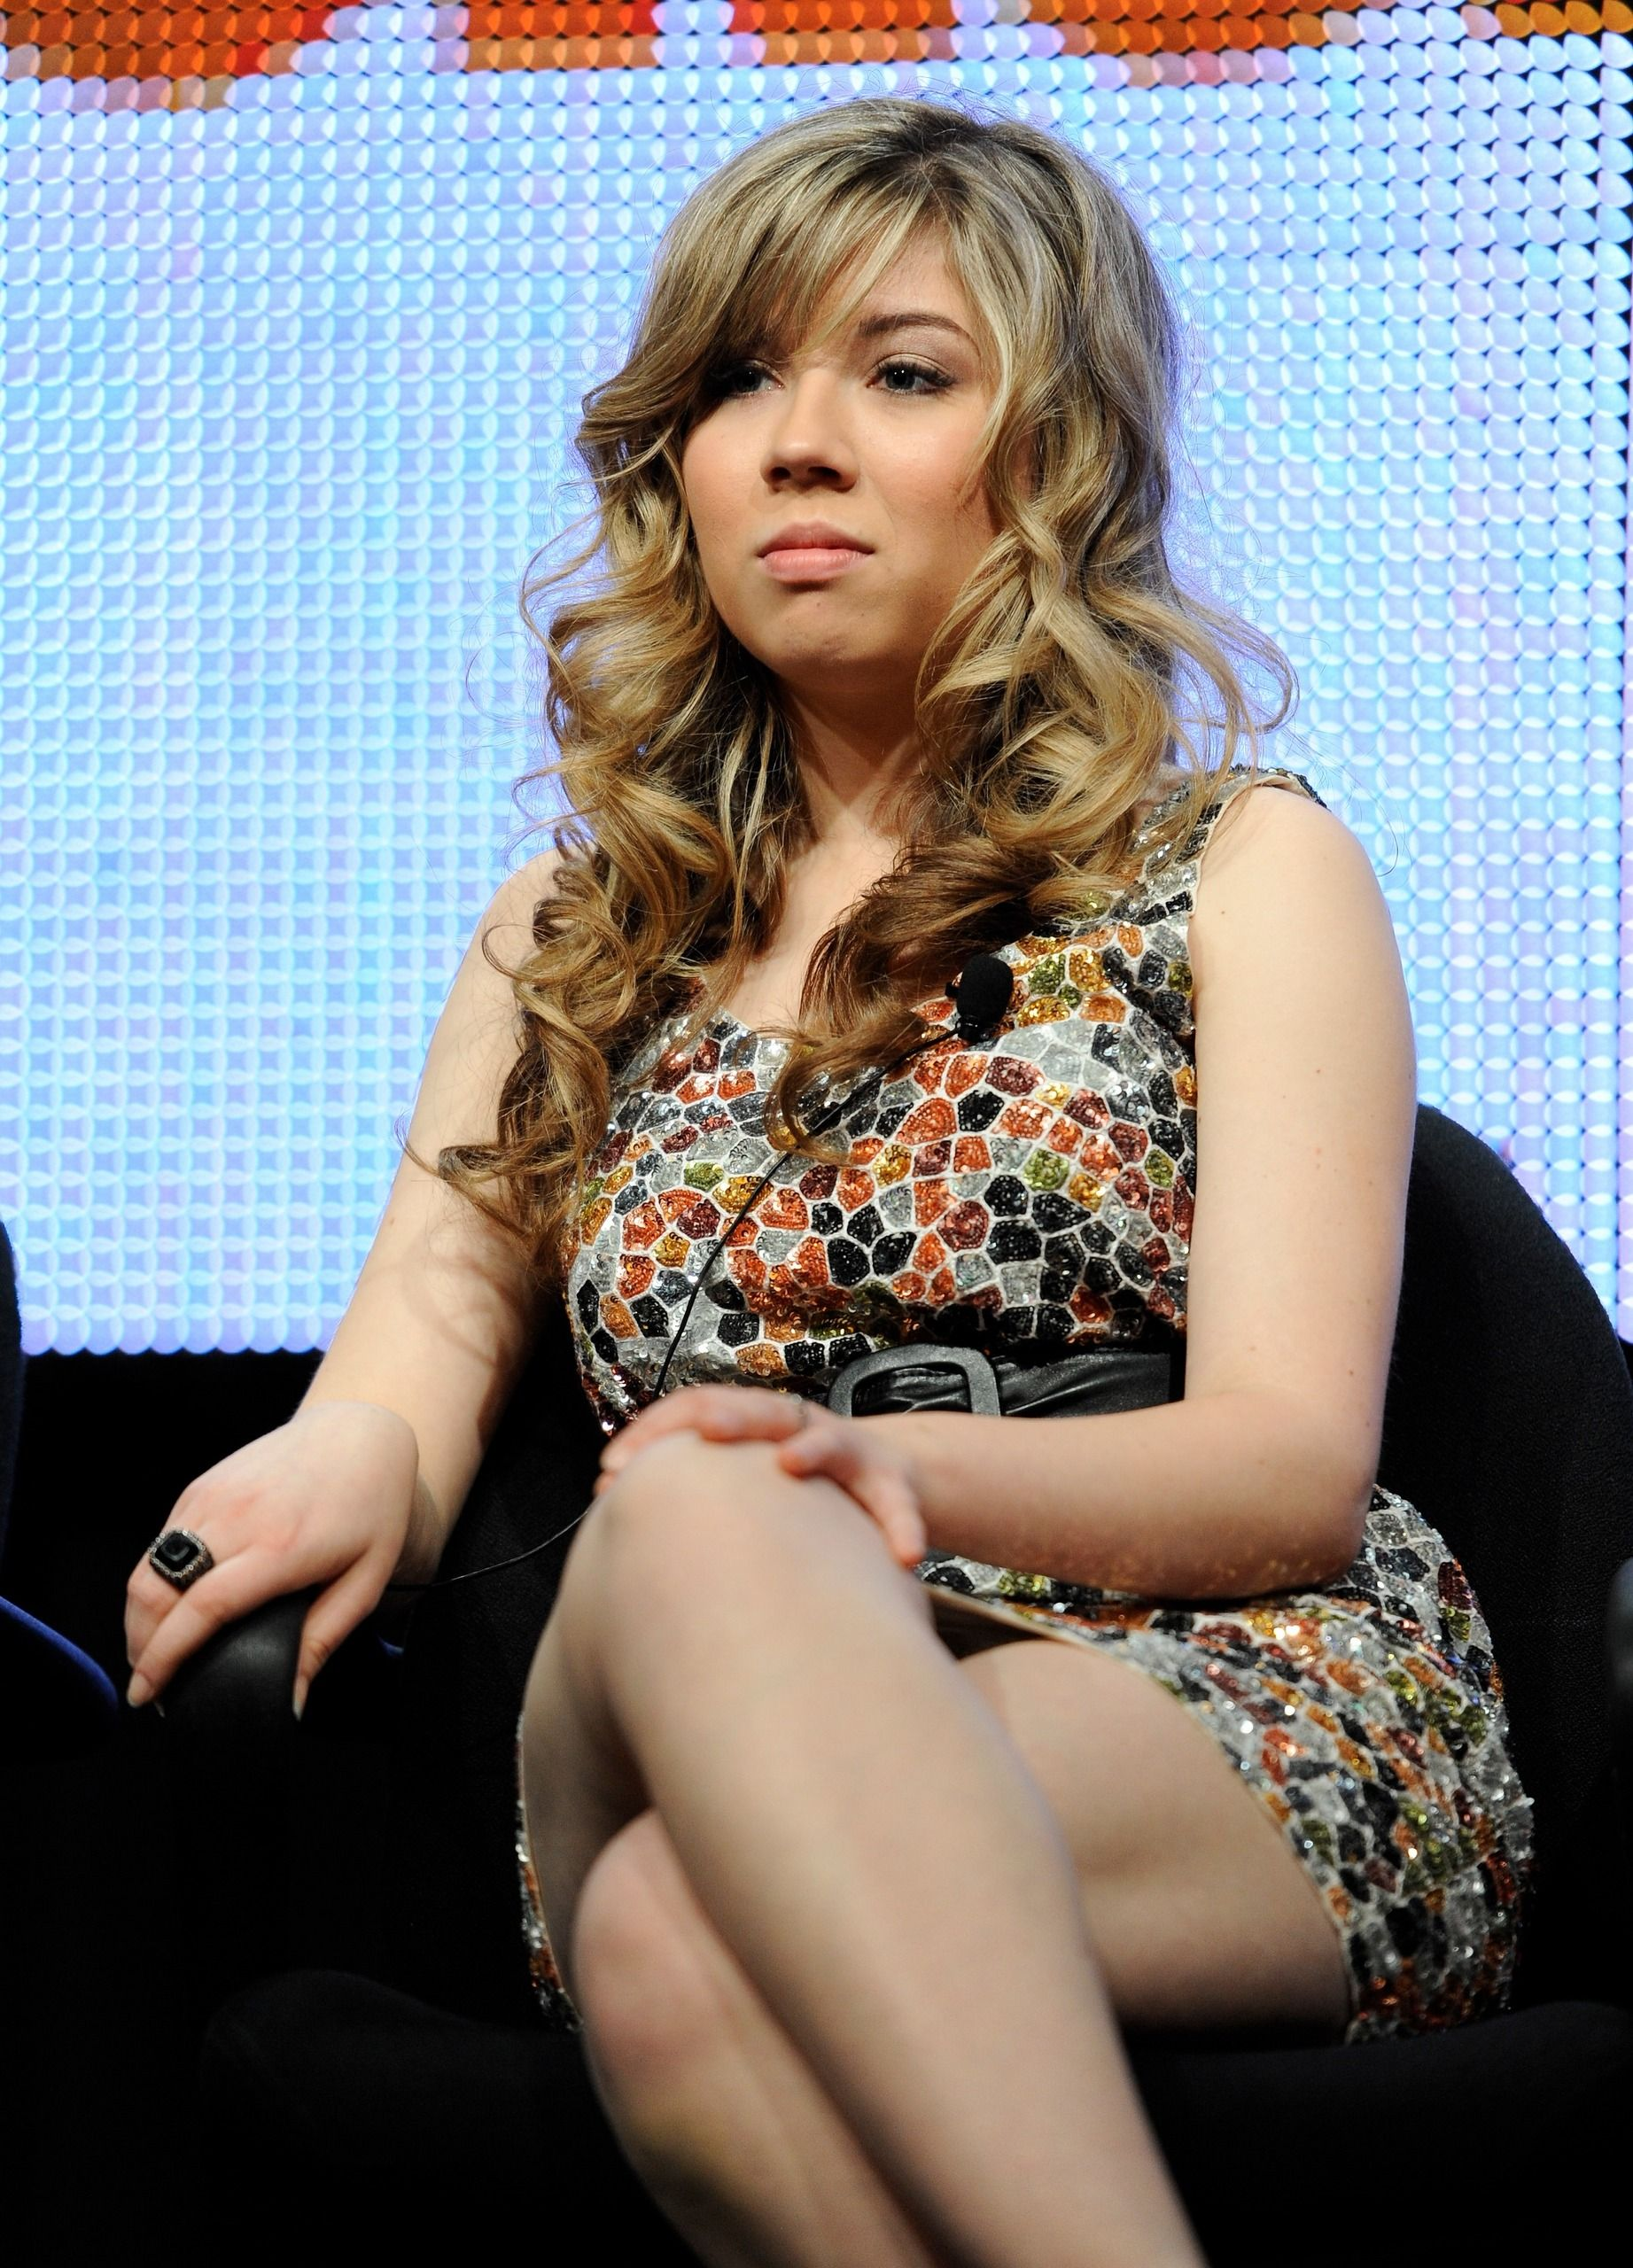 Jennette mccurdy nipple slip video and bikini pics